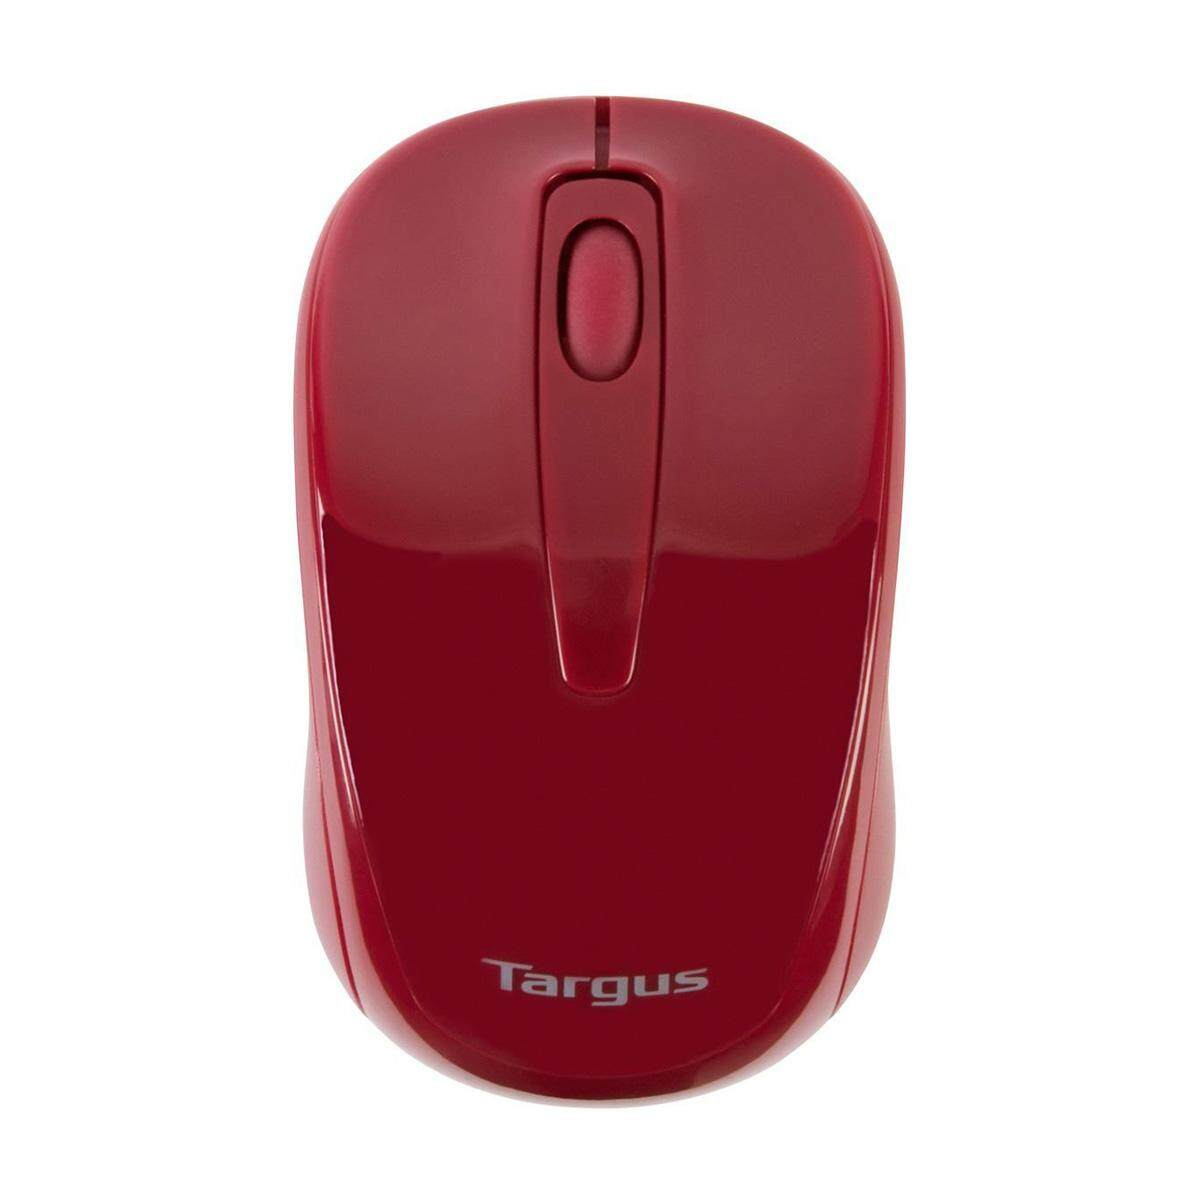 TARGUS WIRELESS OPTICAL MOUSE W600  1600DPI 2.4GHZ WITH USB RECEIVER